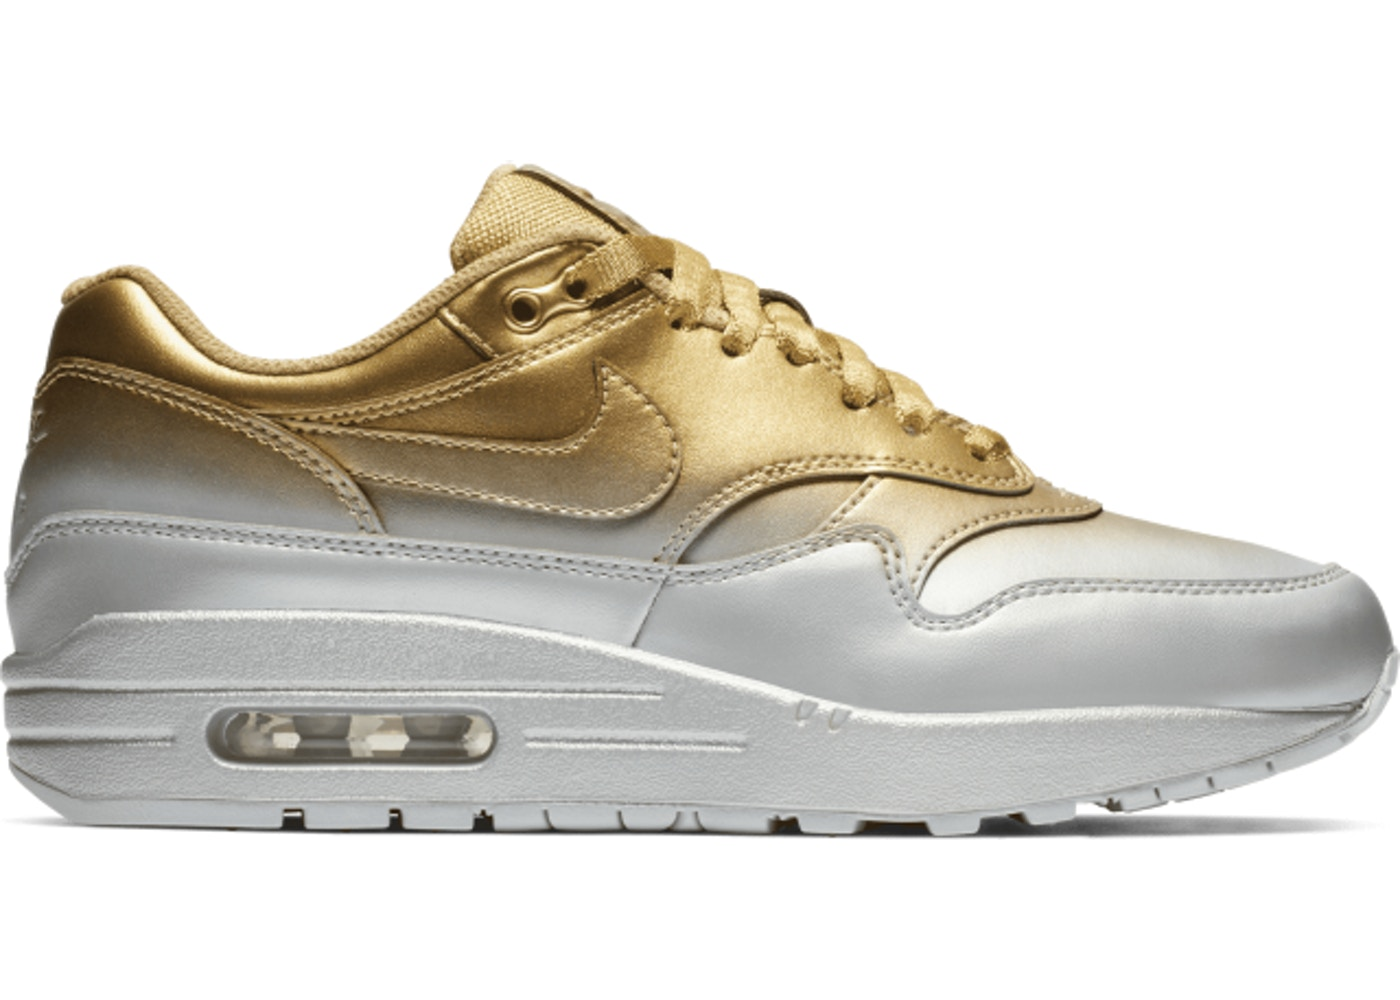 pretty nice 428e8 34e8b Air Max 1 LX Metallic Gold Metallic Platinum (W) - 917691-700